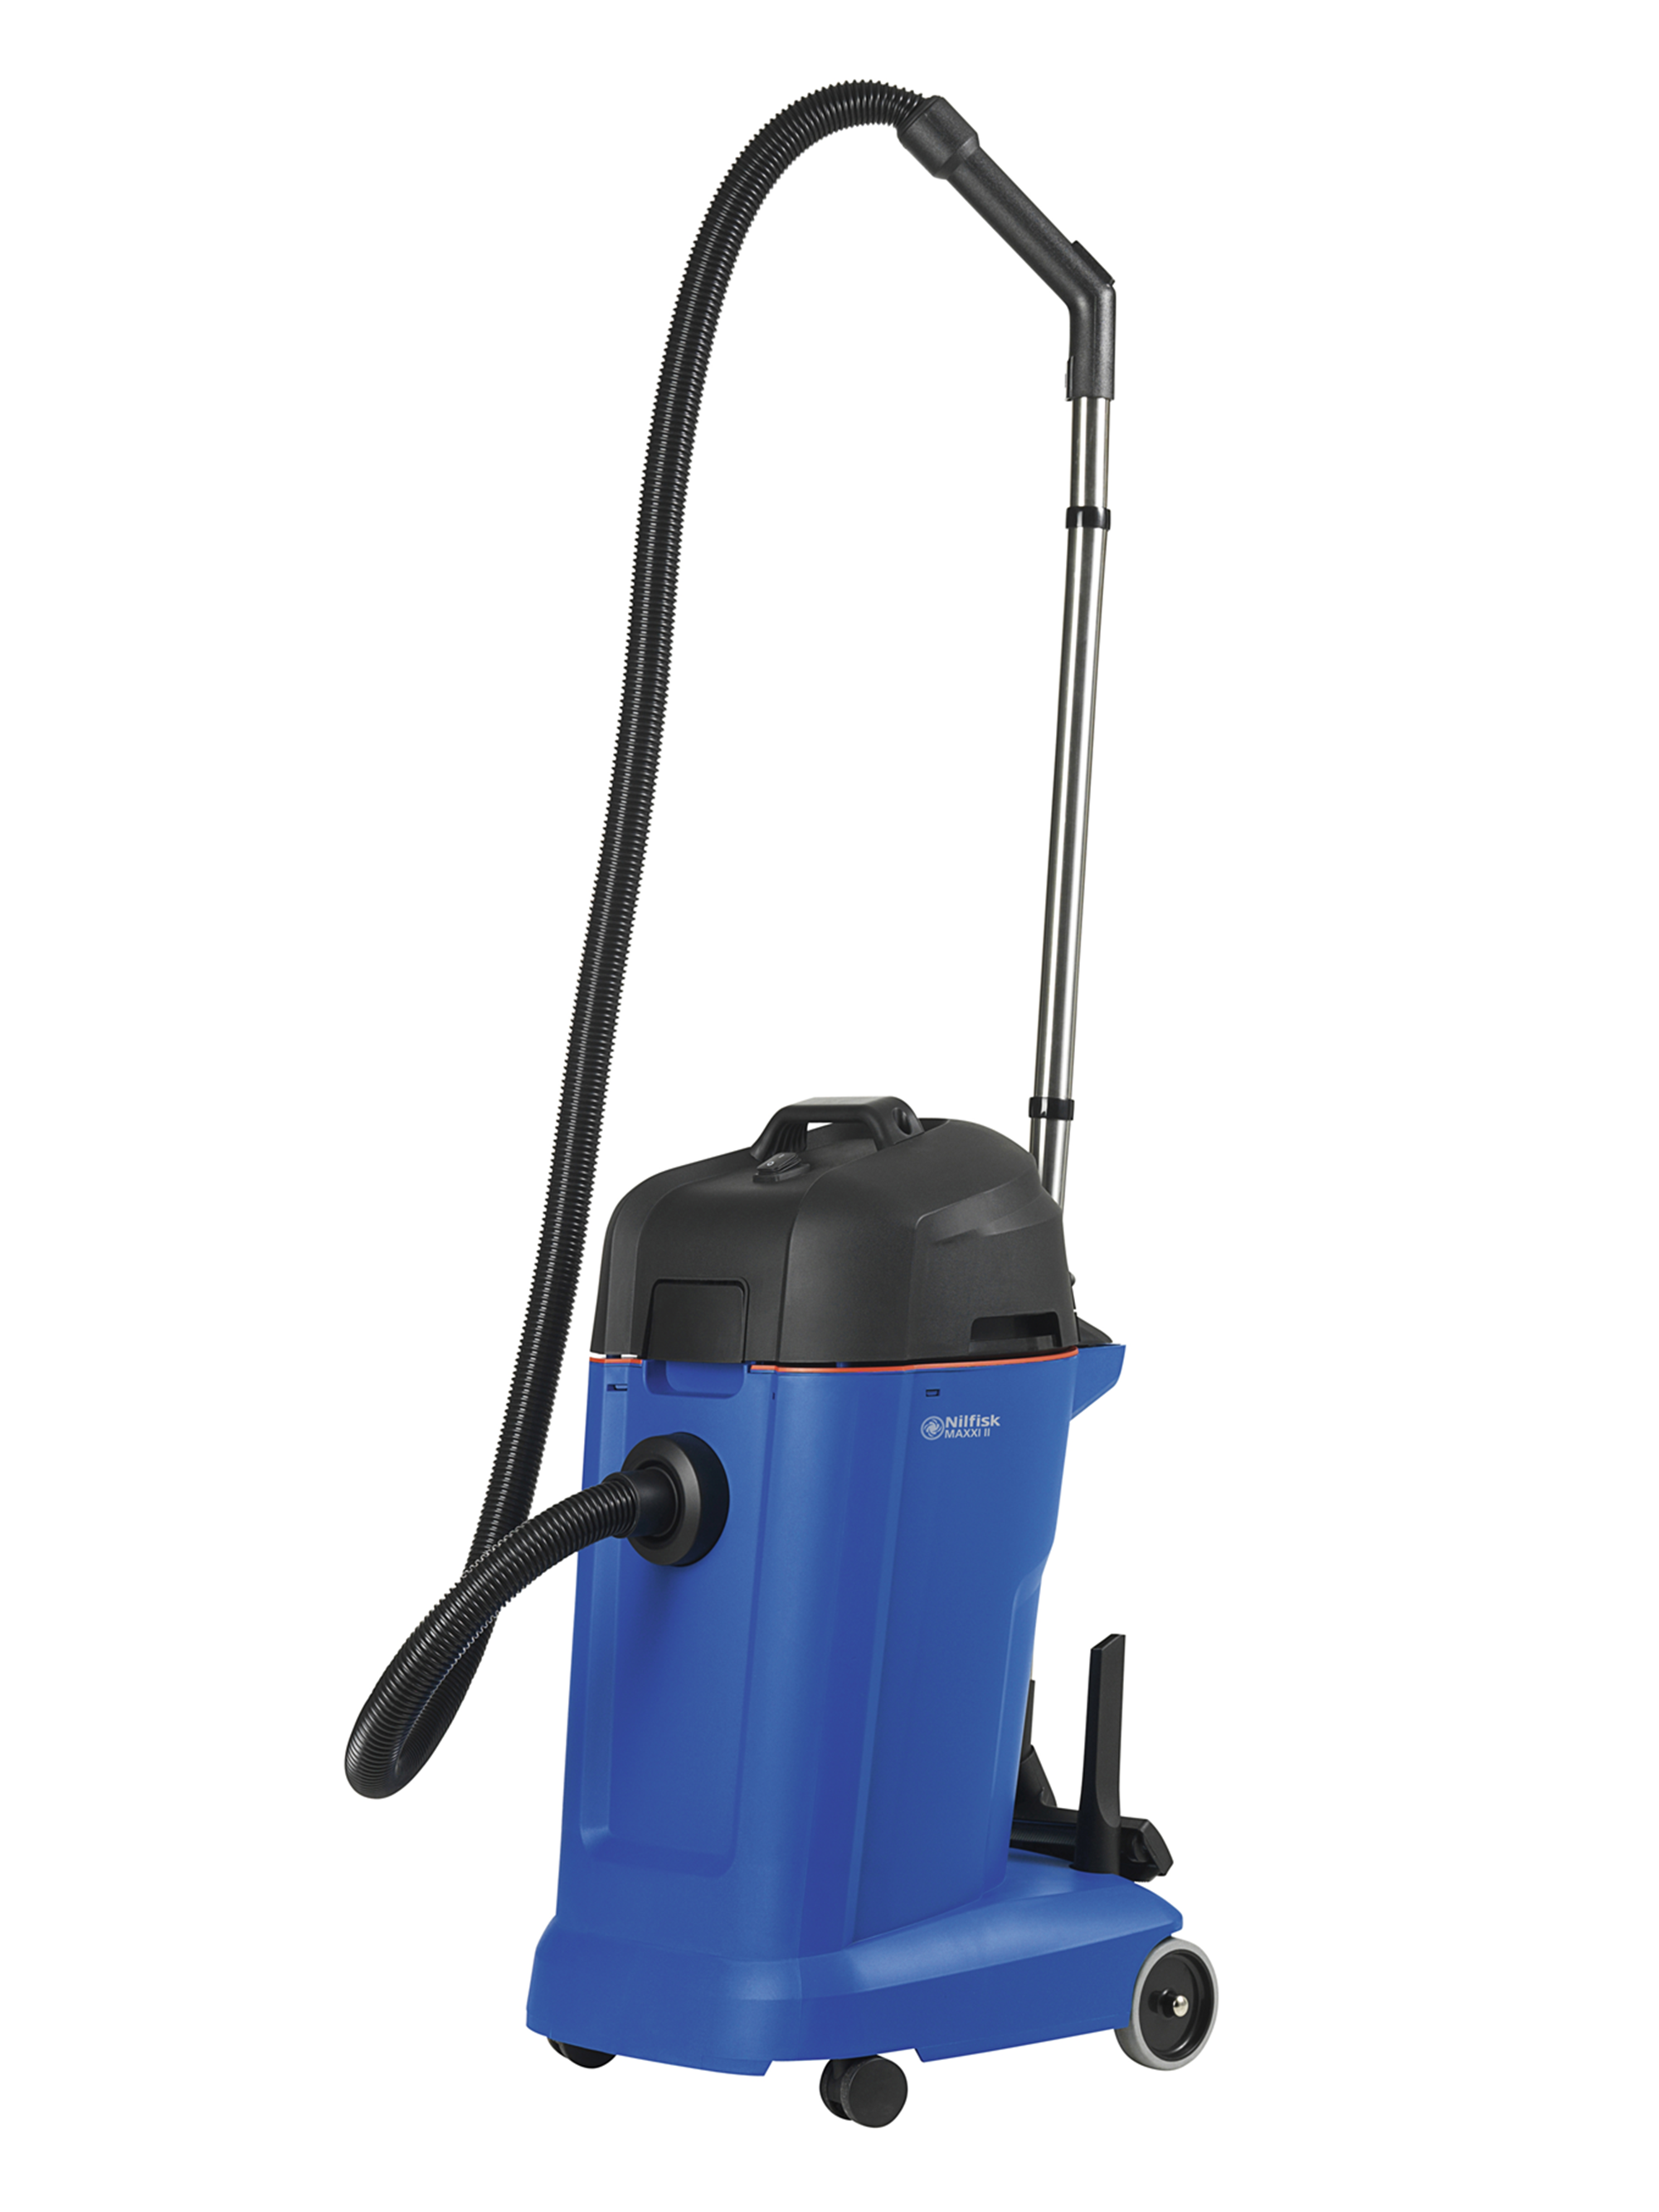 Product, Vacuum cleaners, Commercial vacuum cleaners, Wet and dry vacuum cleaners, Nilfisk, MAXXI II 35 WD 220-240V/50-60 EU